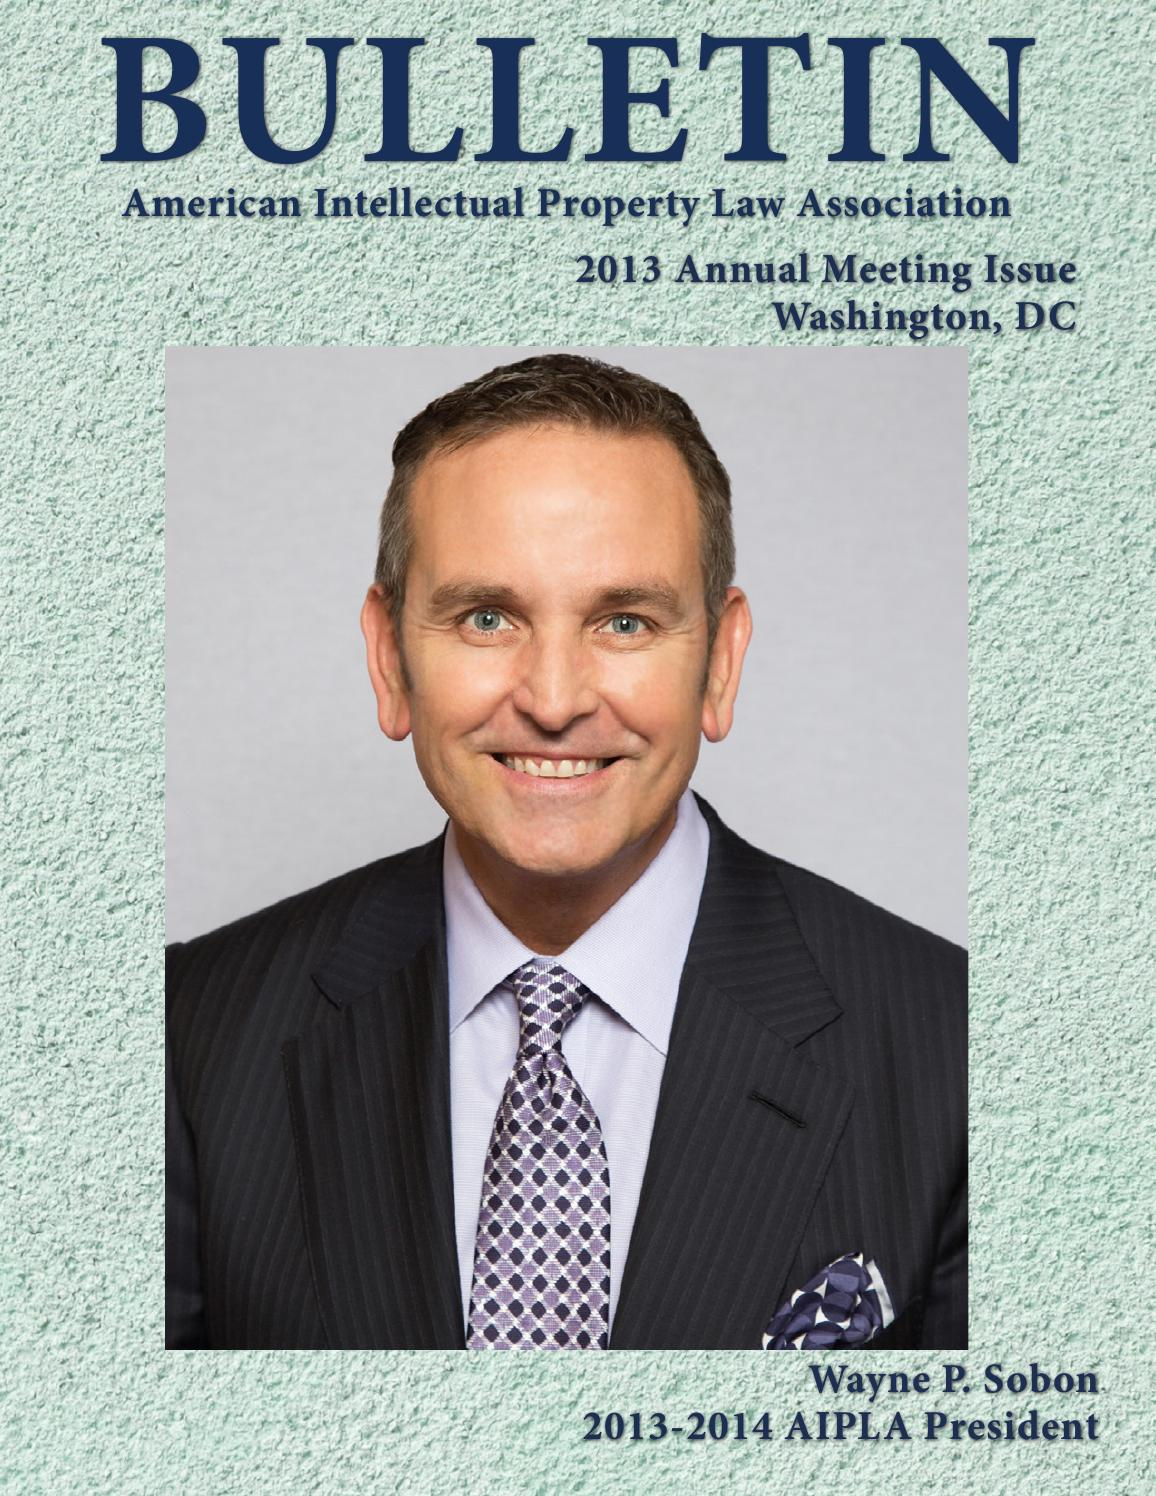 American Intellectual Property Law Association Annual Meeting